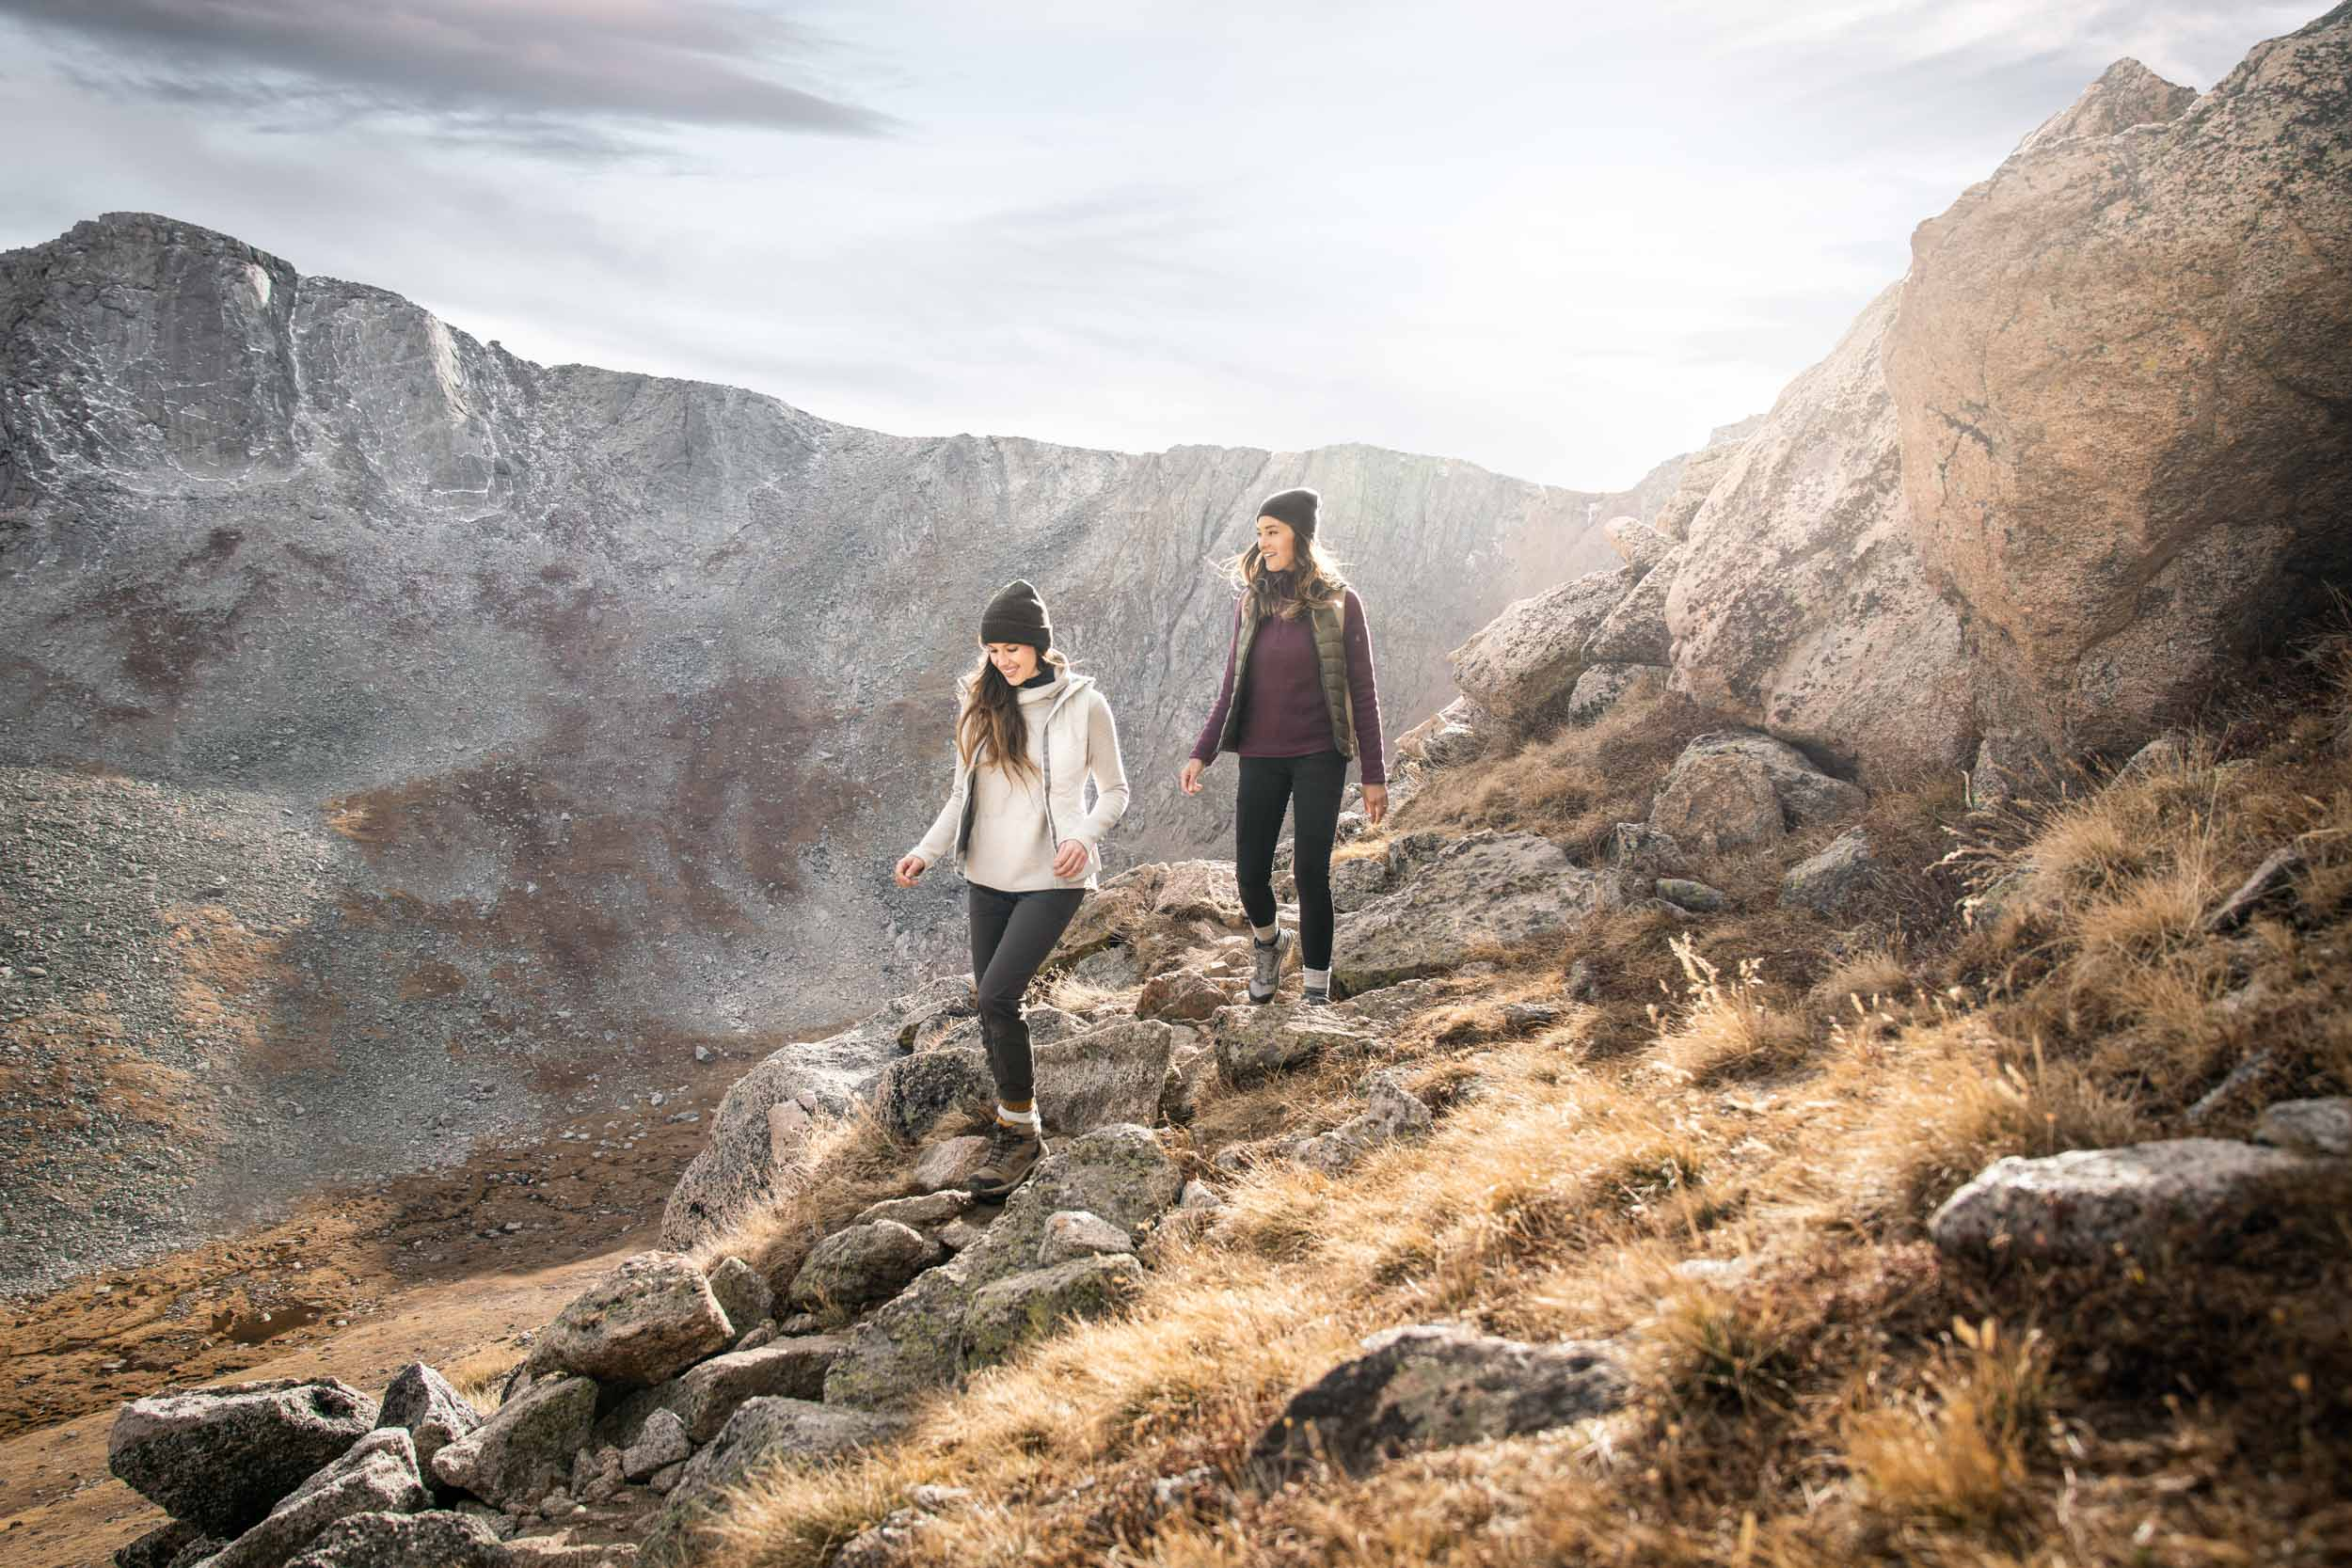 Two female hikers walk down a rocky path covered in golden grass near Mount Evans Colorado